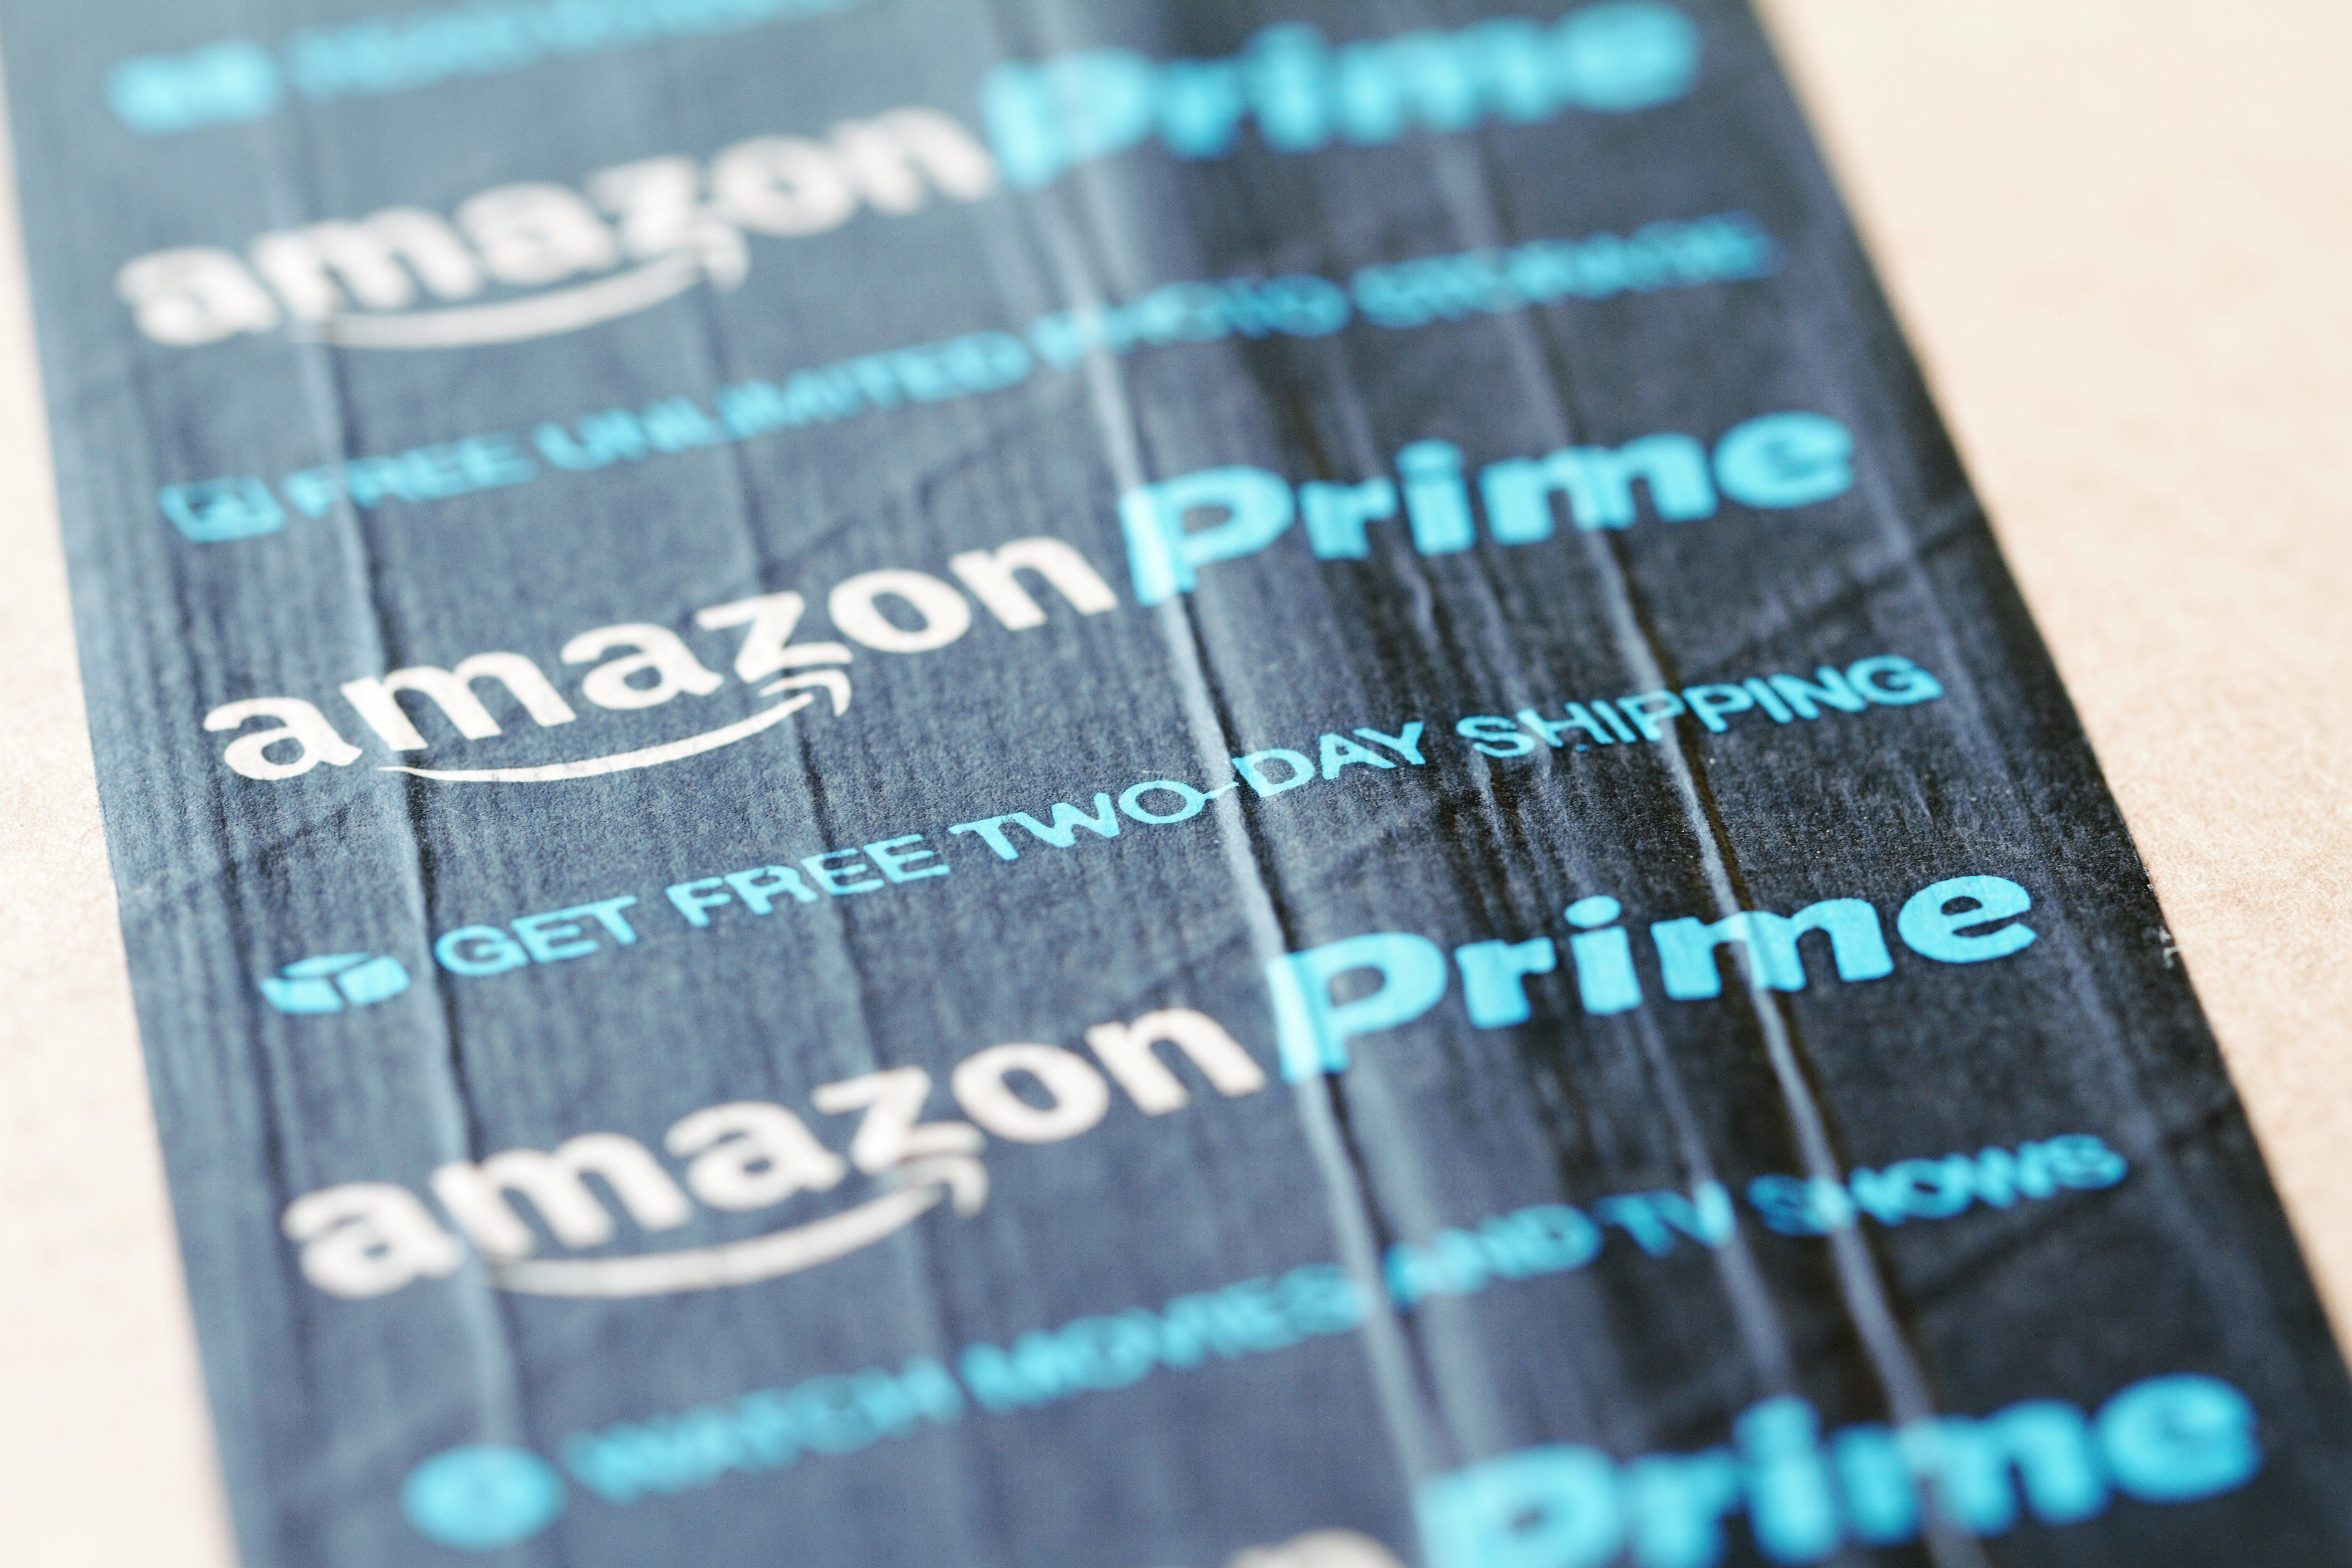 The benefits of Amazon Prime have been valued at $784 a